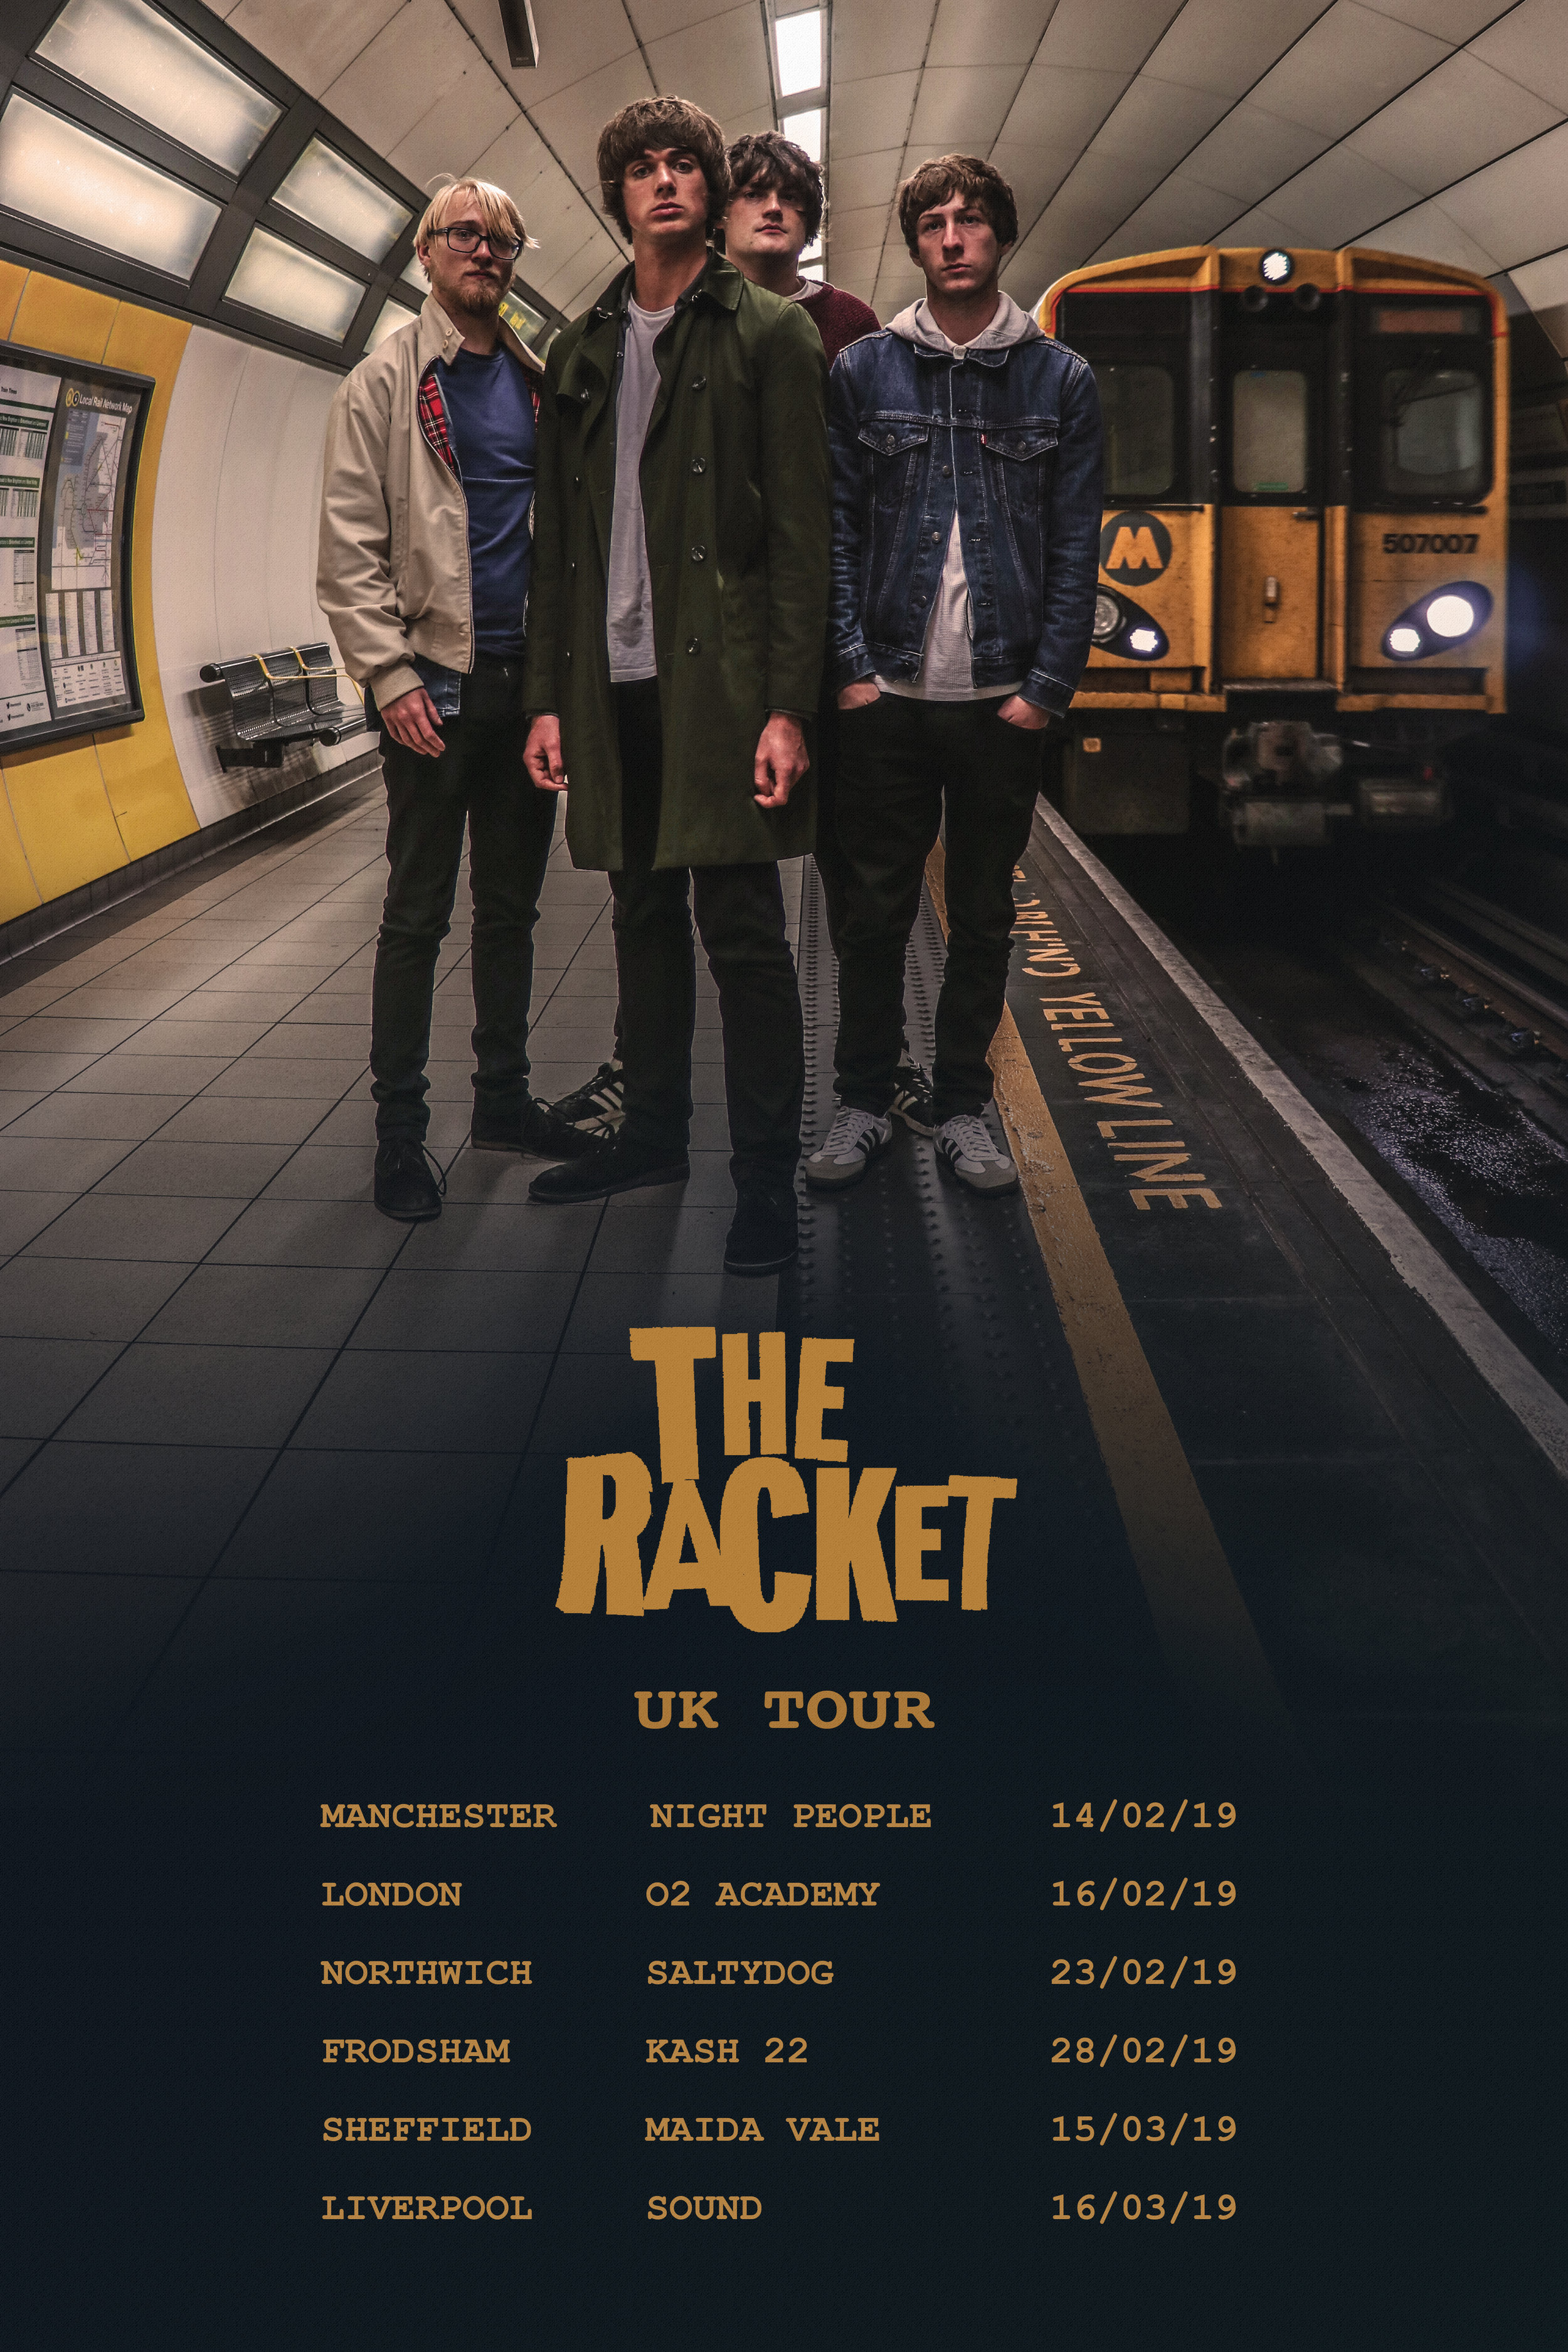 THE RACKET UK TOUR FEB MARCH 2019.jpg